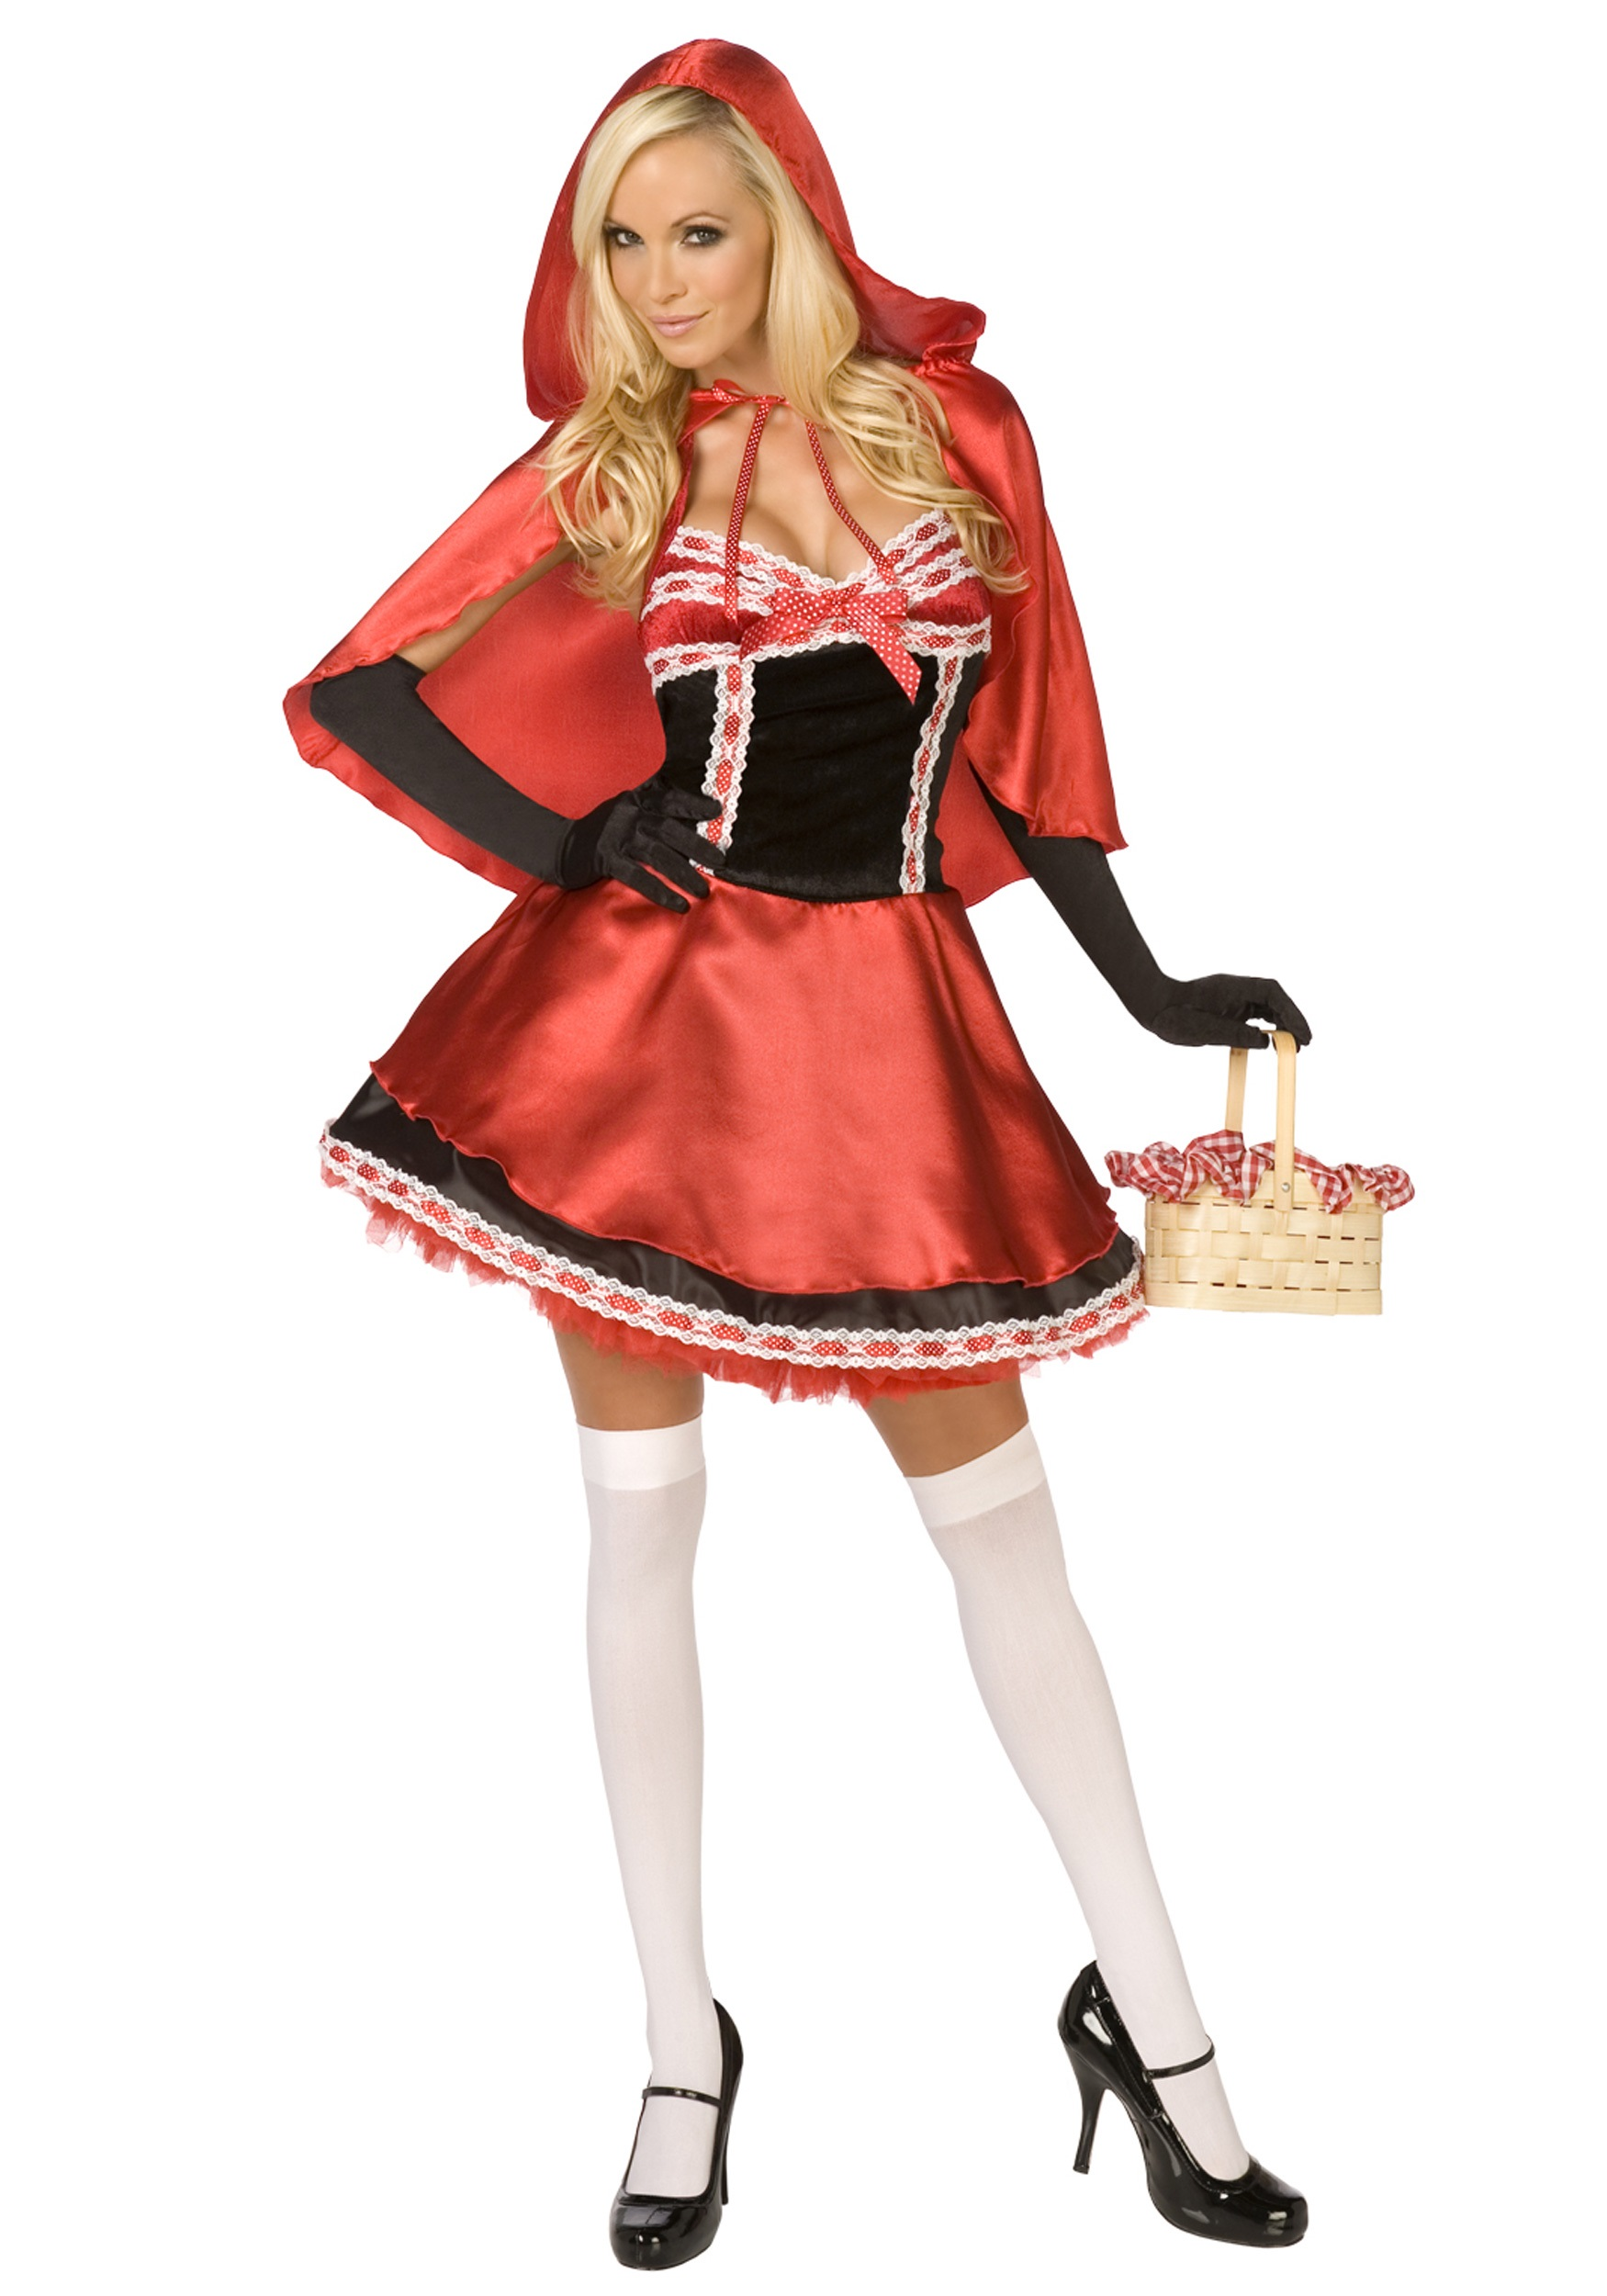 from Eddie red riding hood adult costume